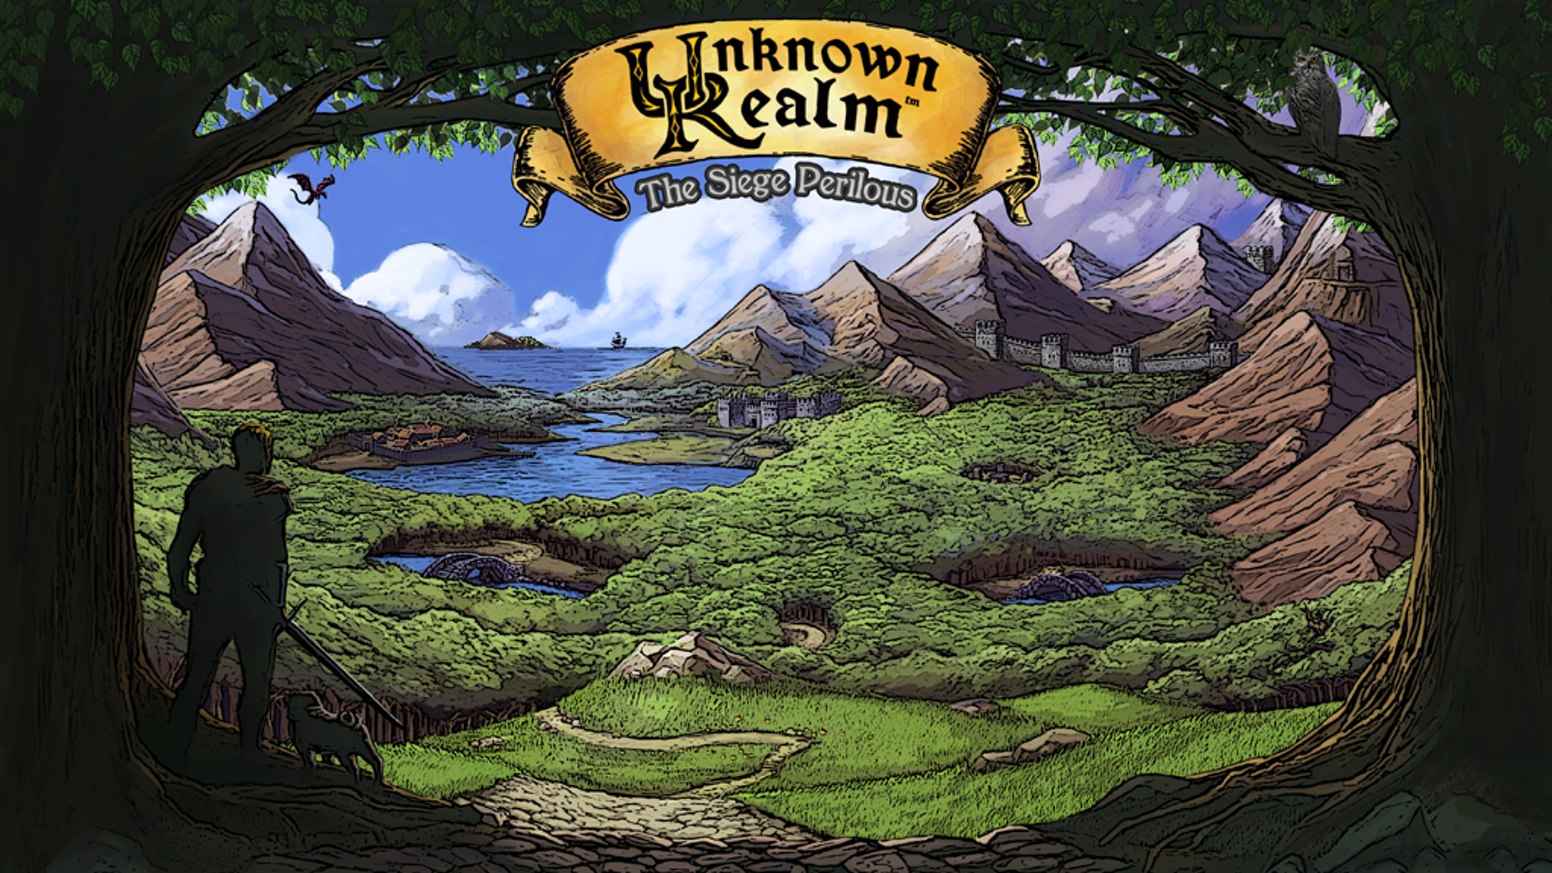 Unknown Realm: The Siege Perilous is a new 8-bit fantasy role-playing game for PC and C64 inspired by the classic RPGs of the 80's.